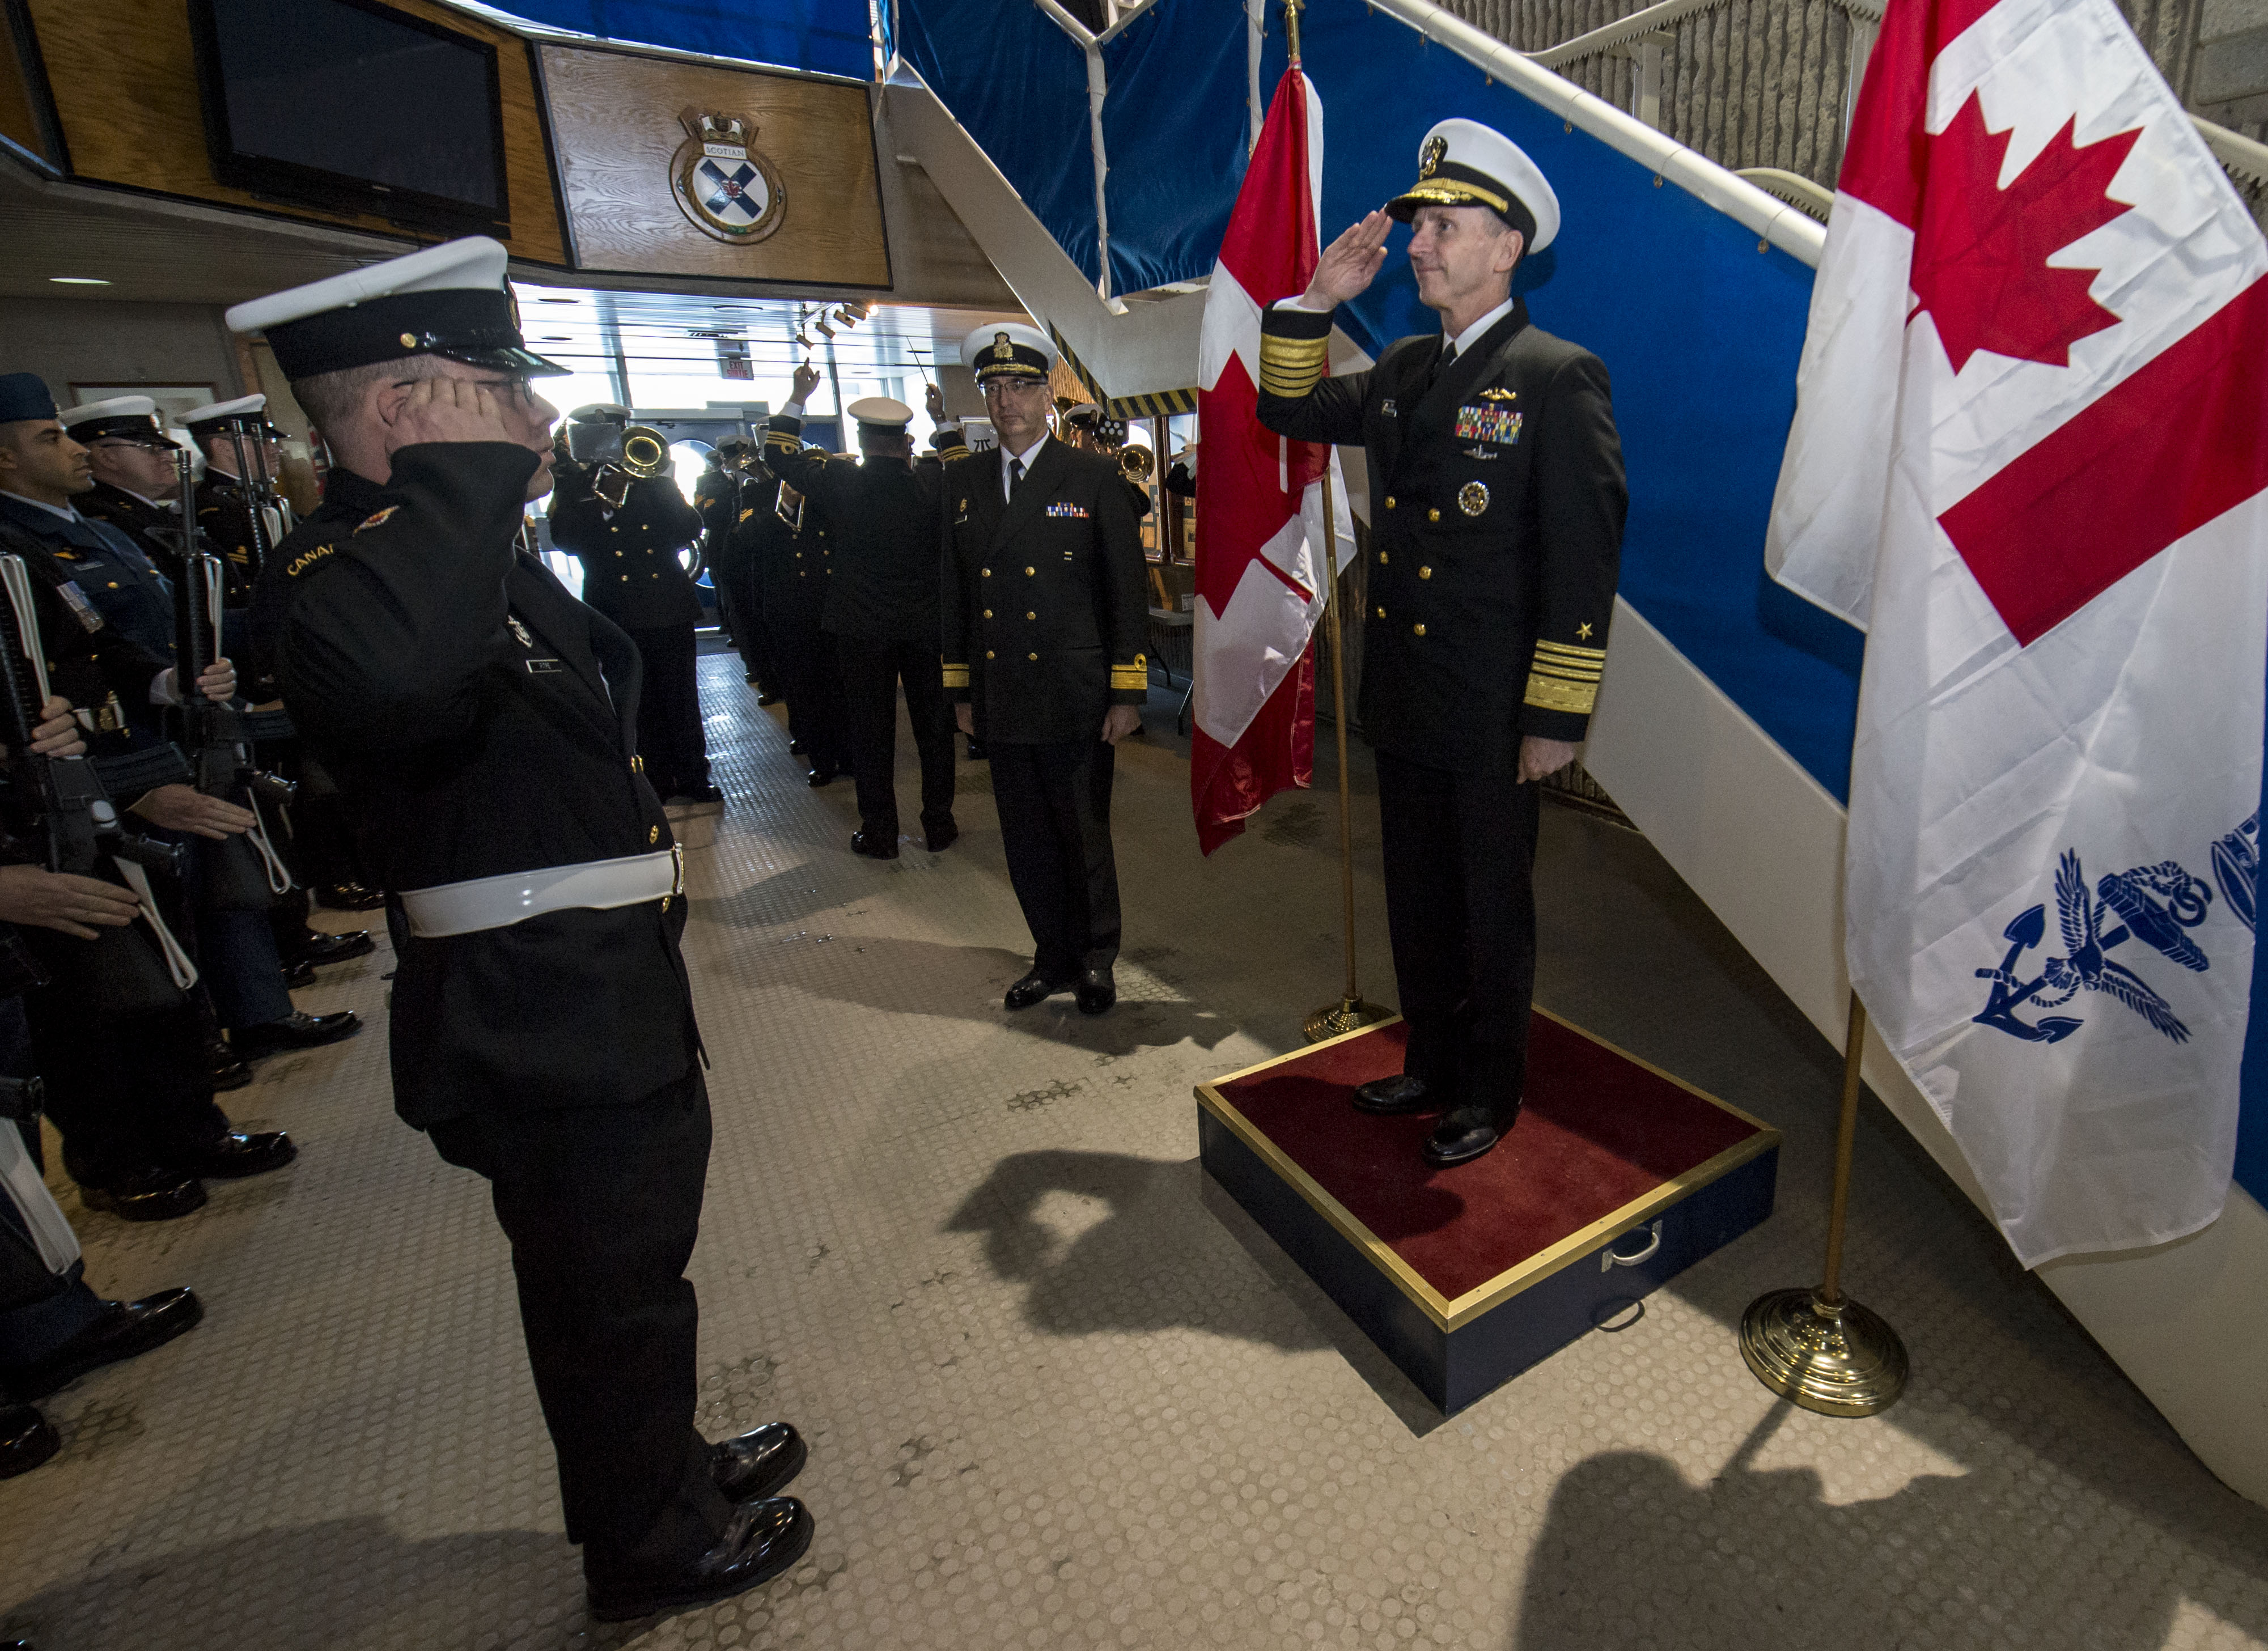 A U.S. Navy Meritorious Unit Commendation was presented to the ship by U.S. Chief of Naval Operations Admiral Jonathan Greenert on February 20 in Halifax.